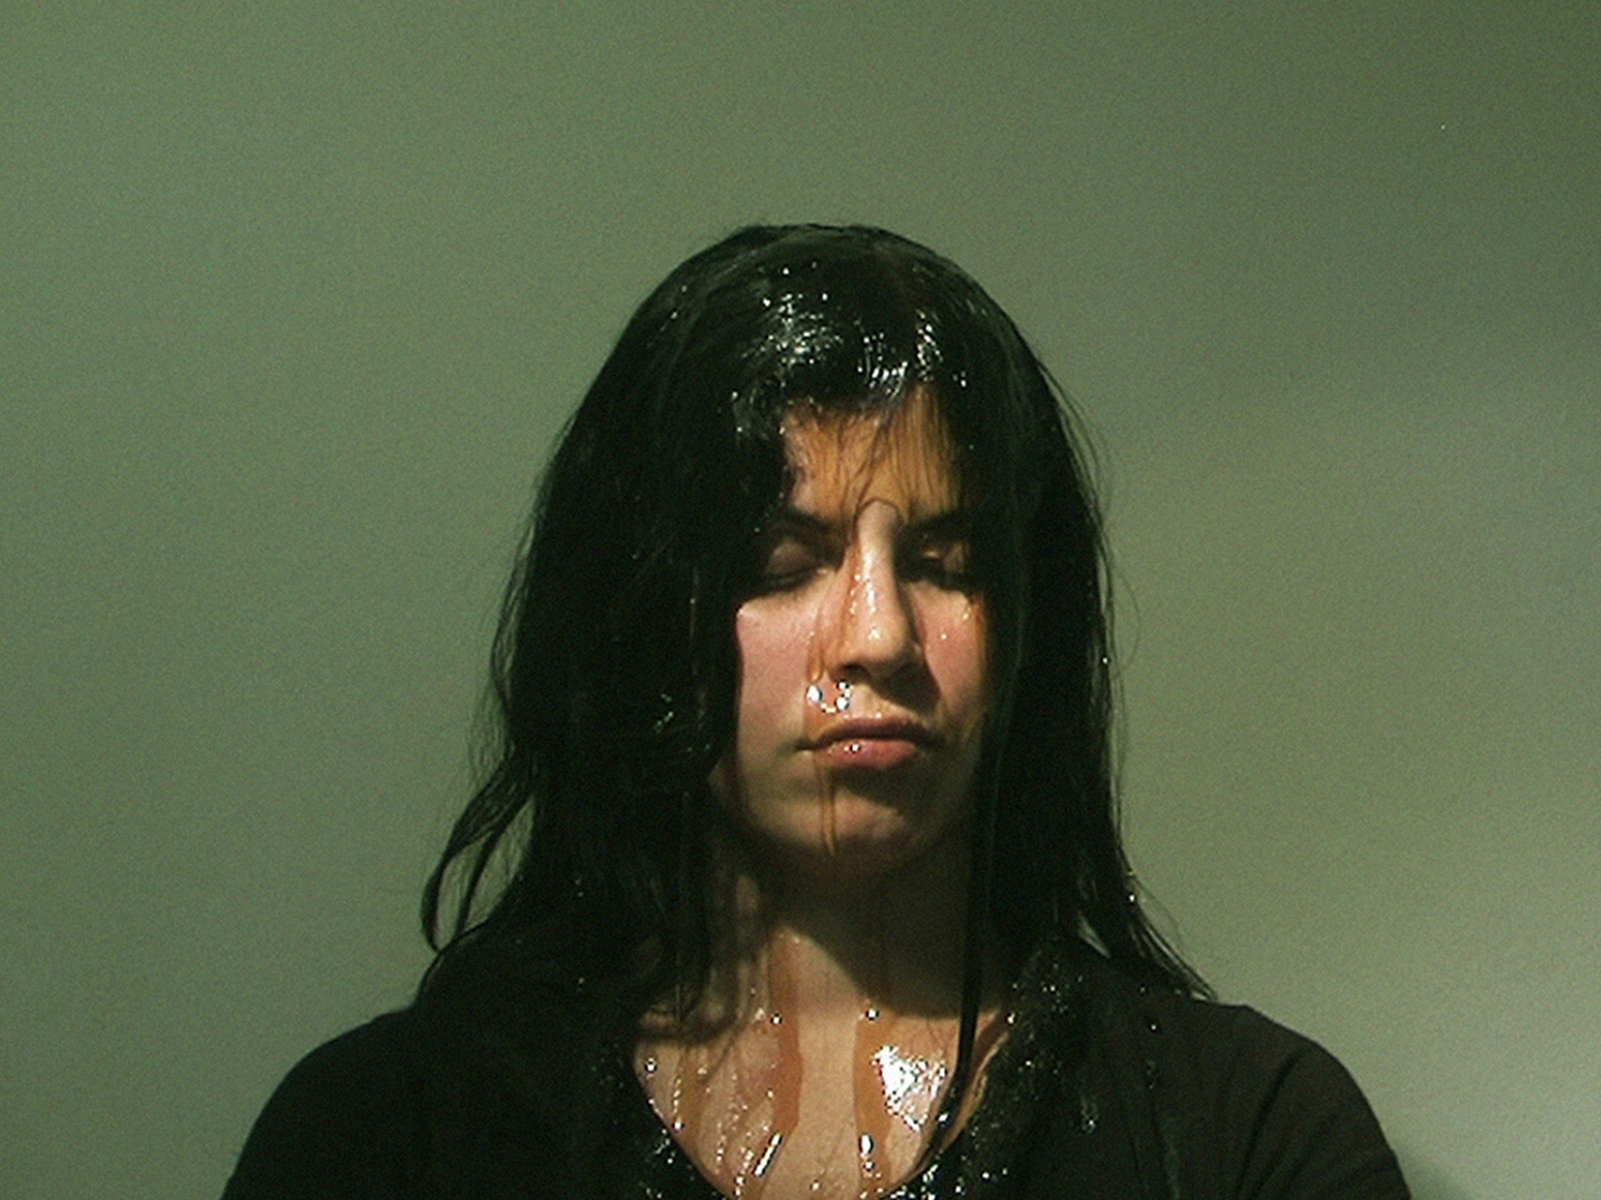 7. A drop of honey, 2013 - Performance, Video Still (Naivy Perez)